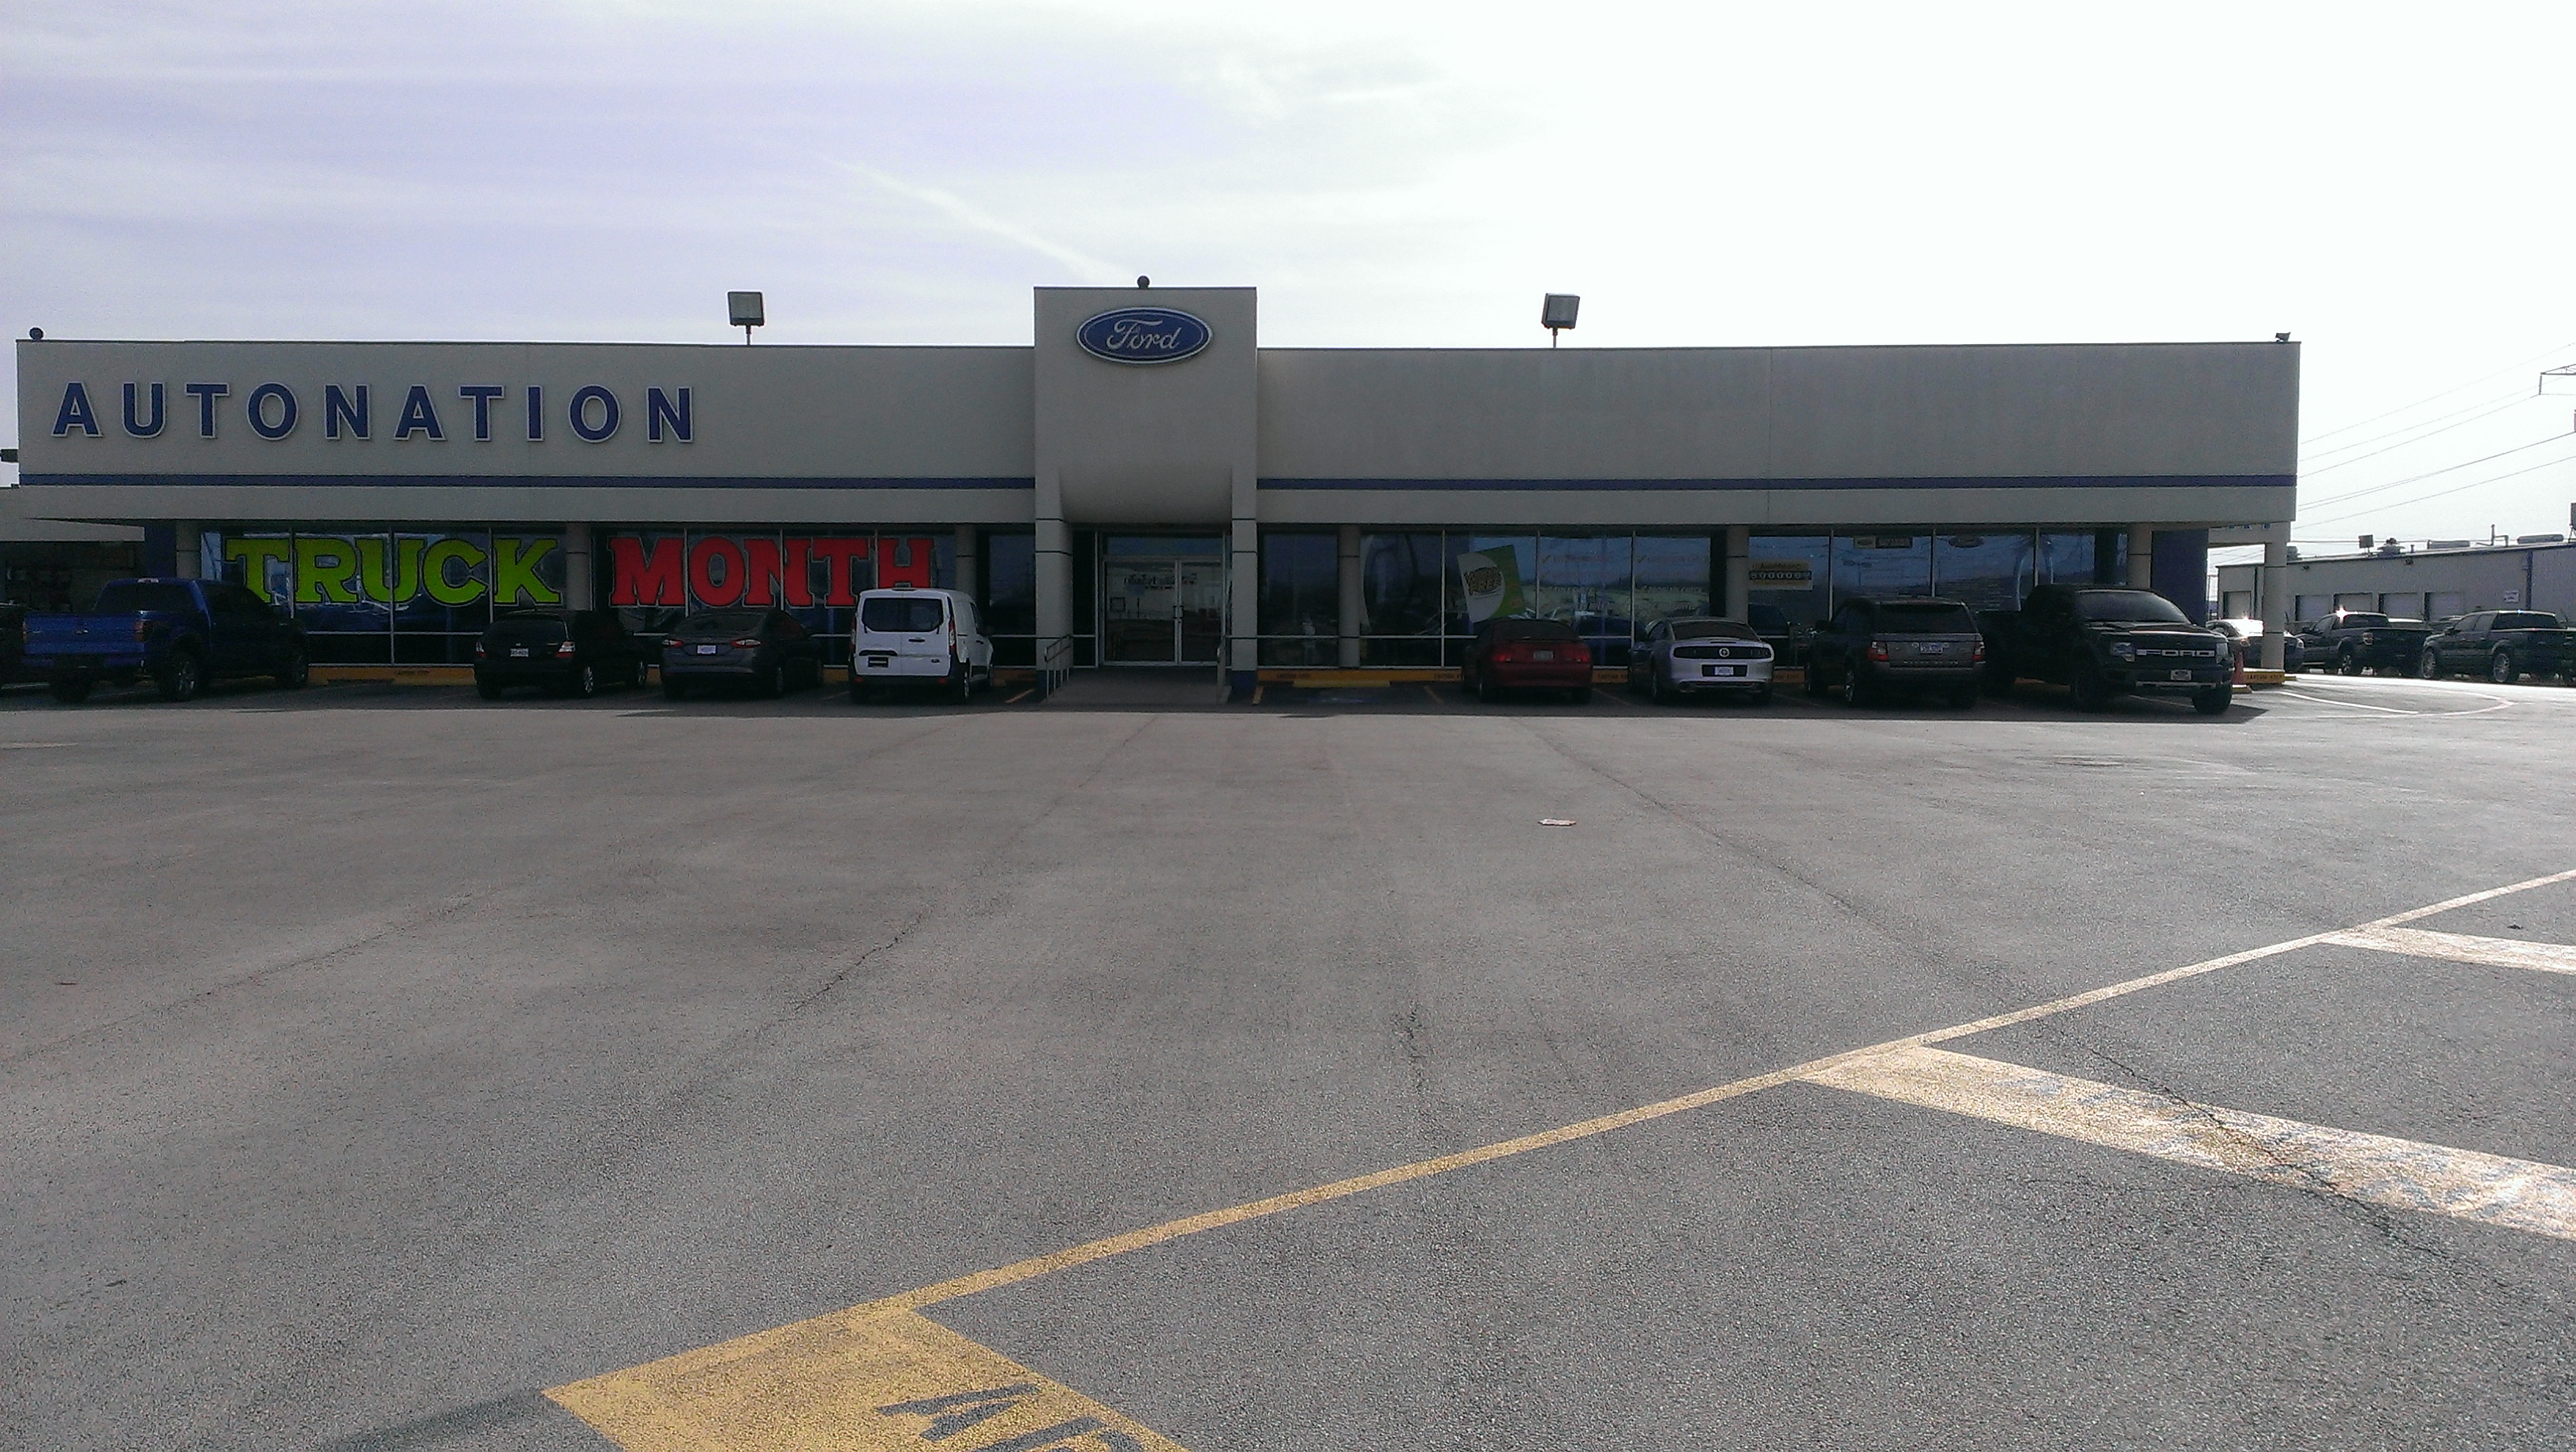 Autonation Ford Fort Worth >> AutoNation Ford Burleson, Burleson Texas (TX) - LocalDatabase.com